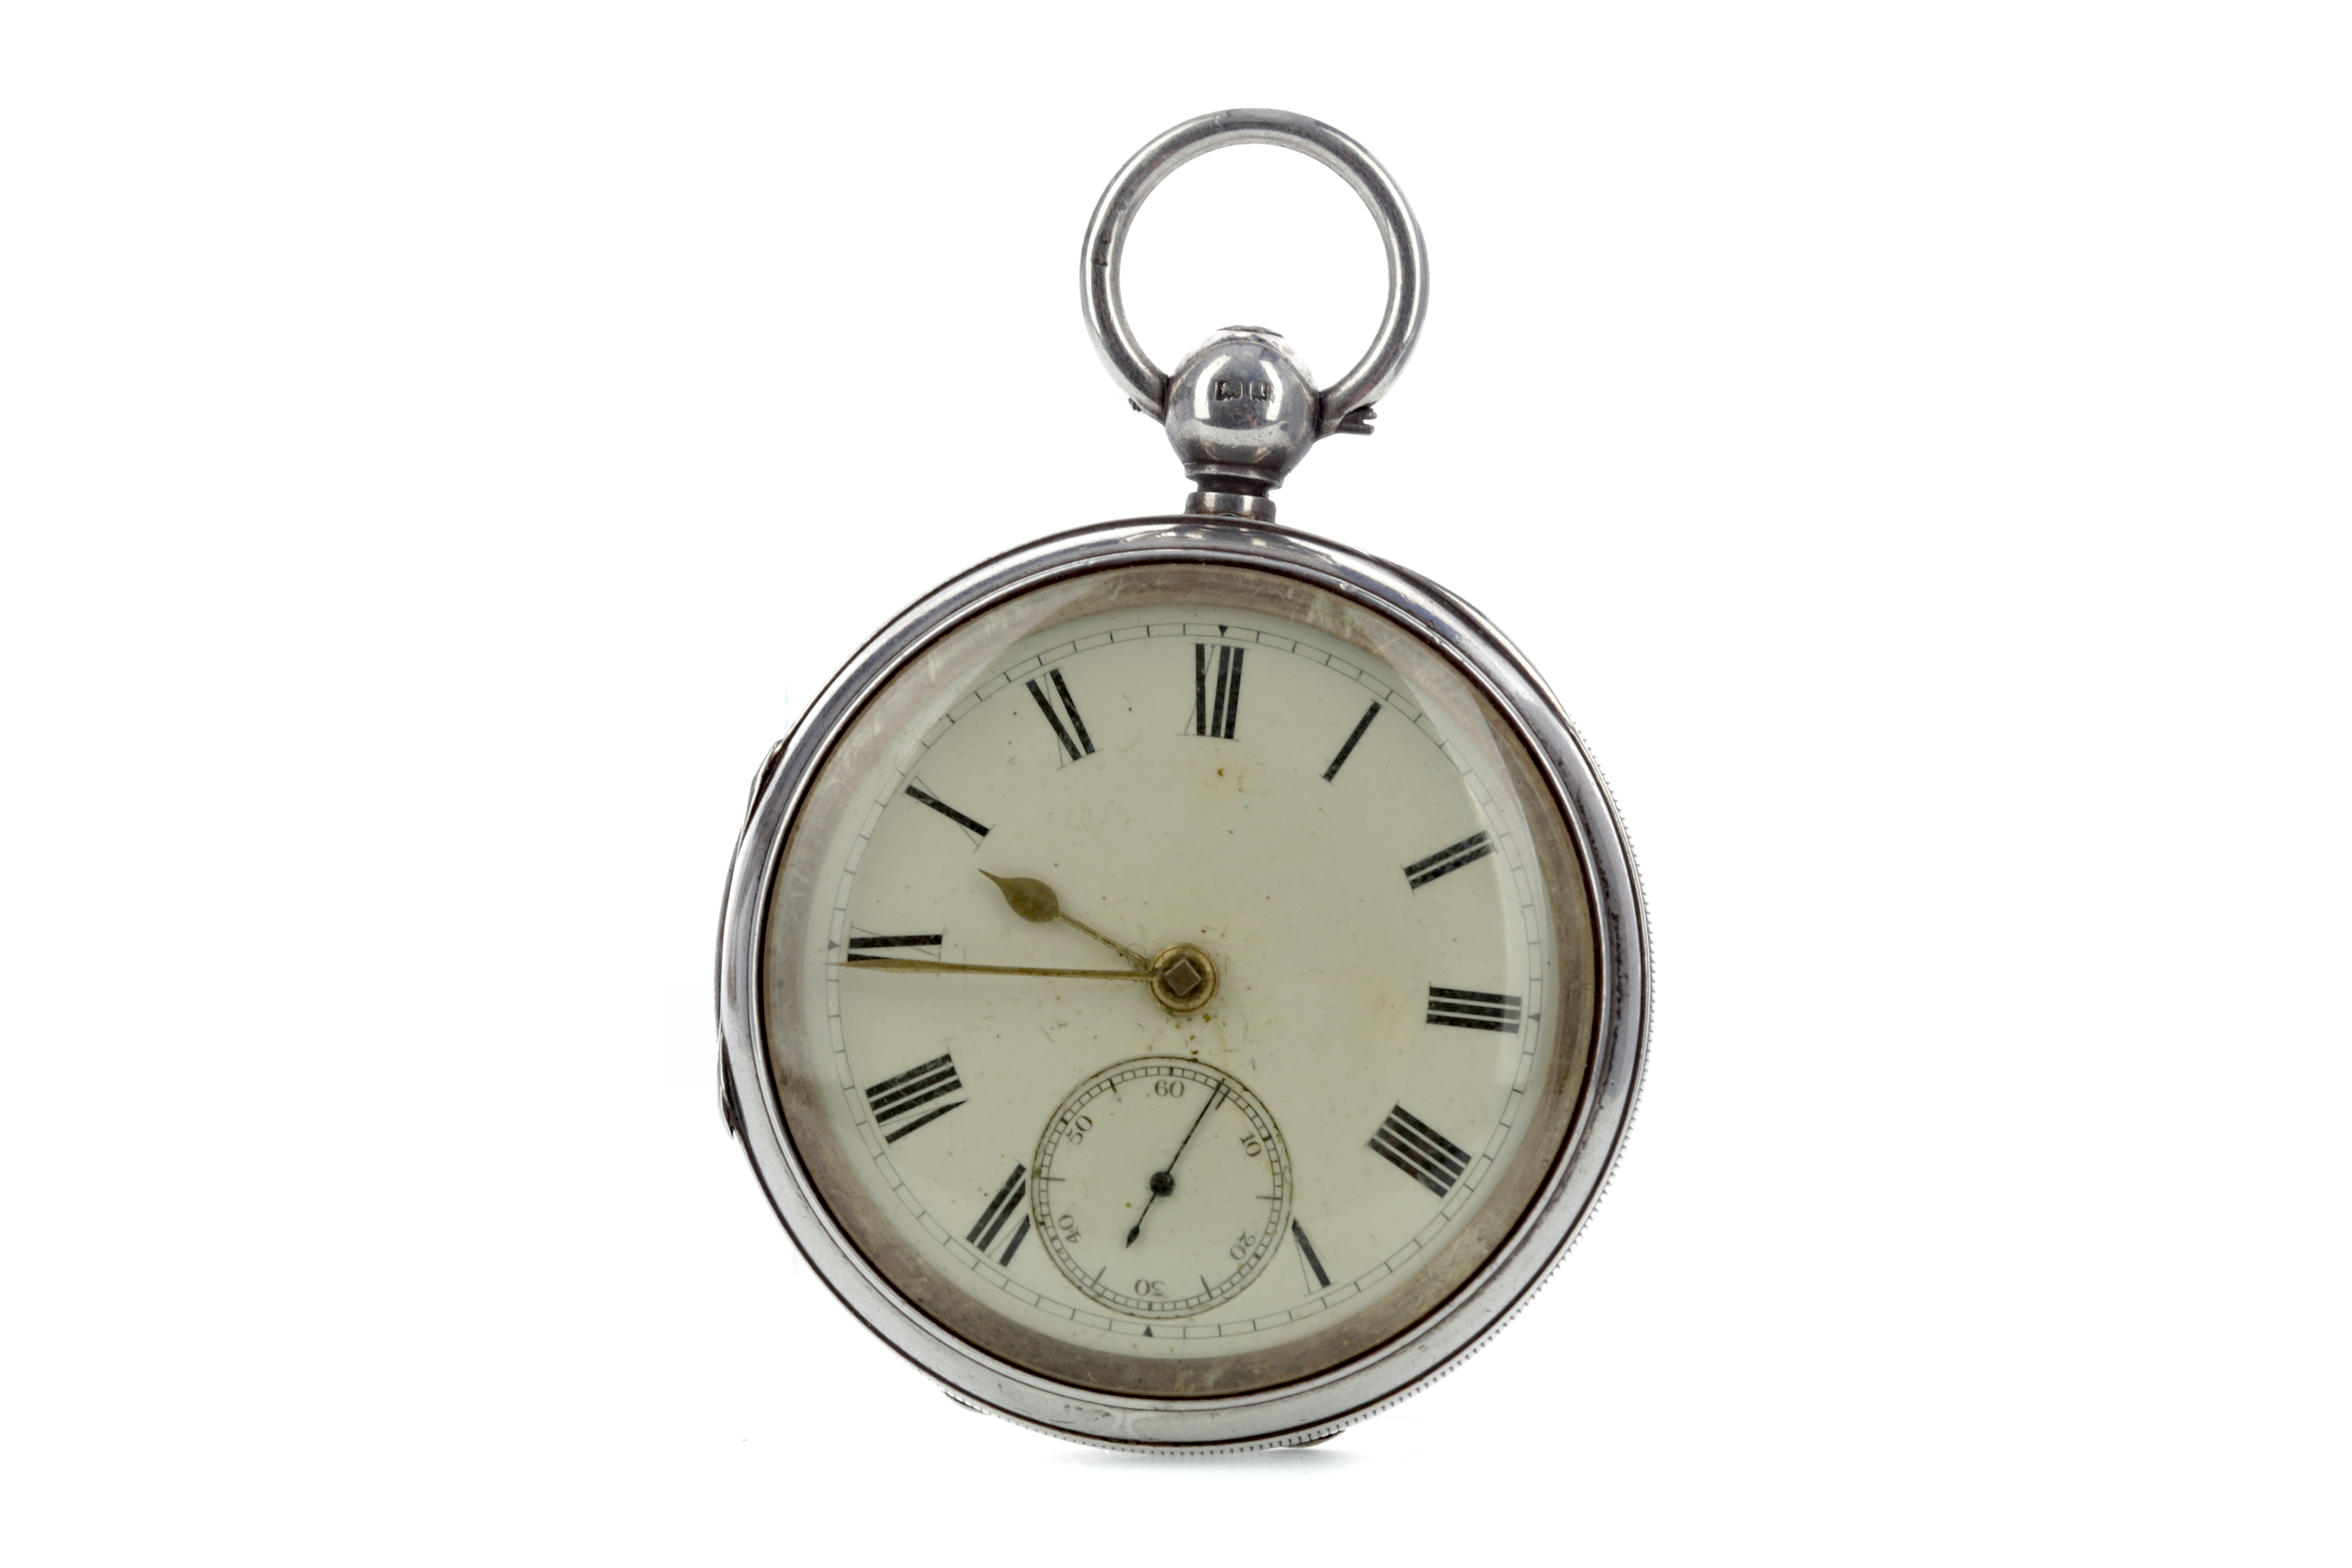 A SILVER CASED OPEN FACE POCKET WATCH WITH GOLD PLATED ALBERT CHAIN